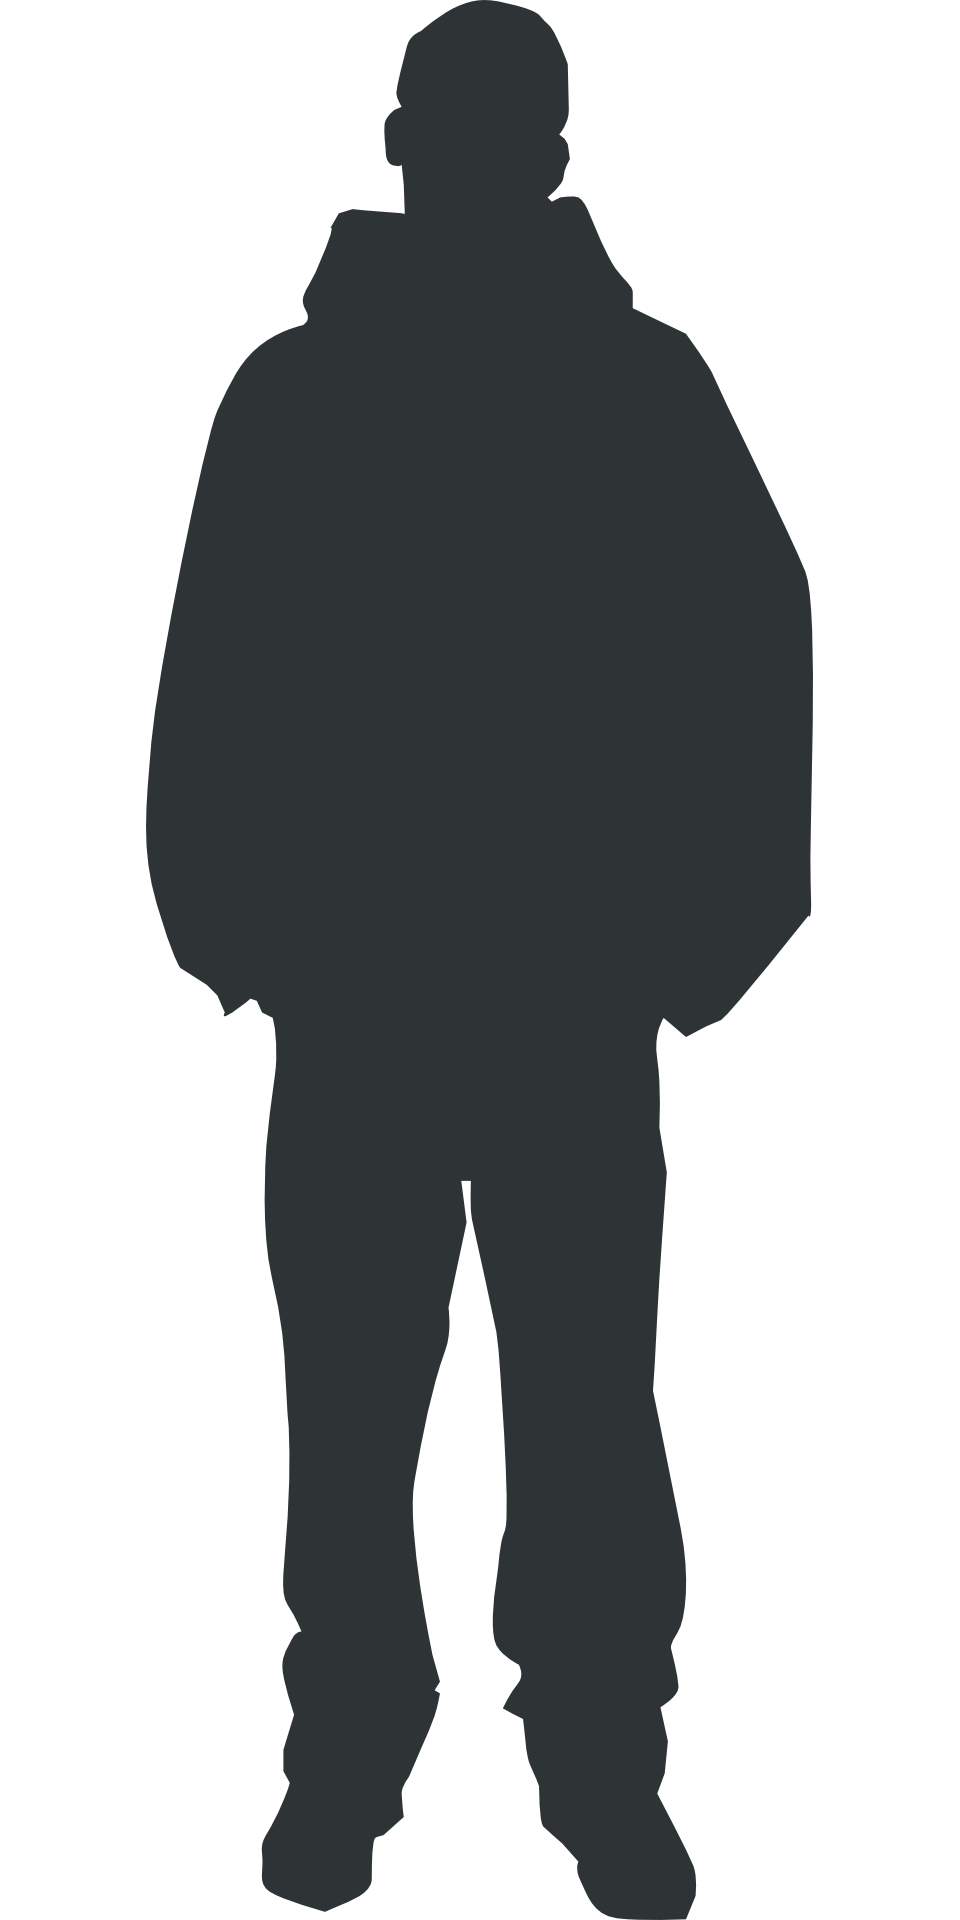 Person Outline Clipart Silhouette.